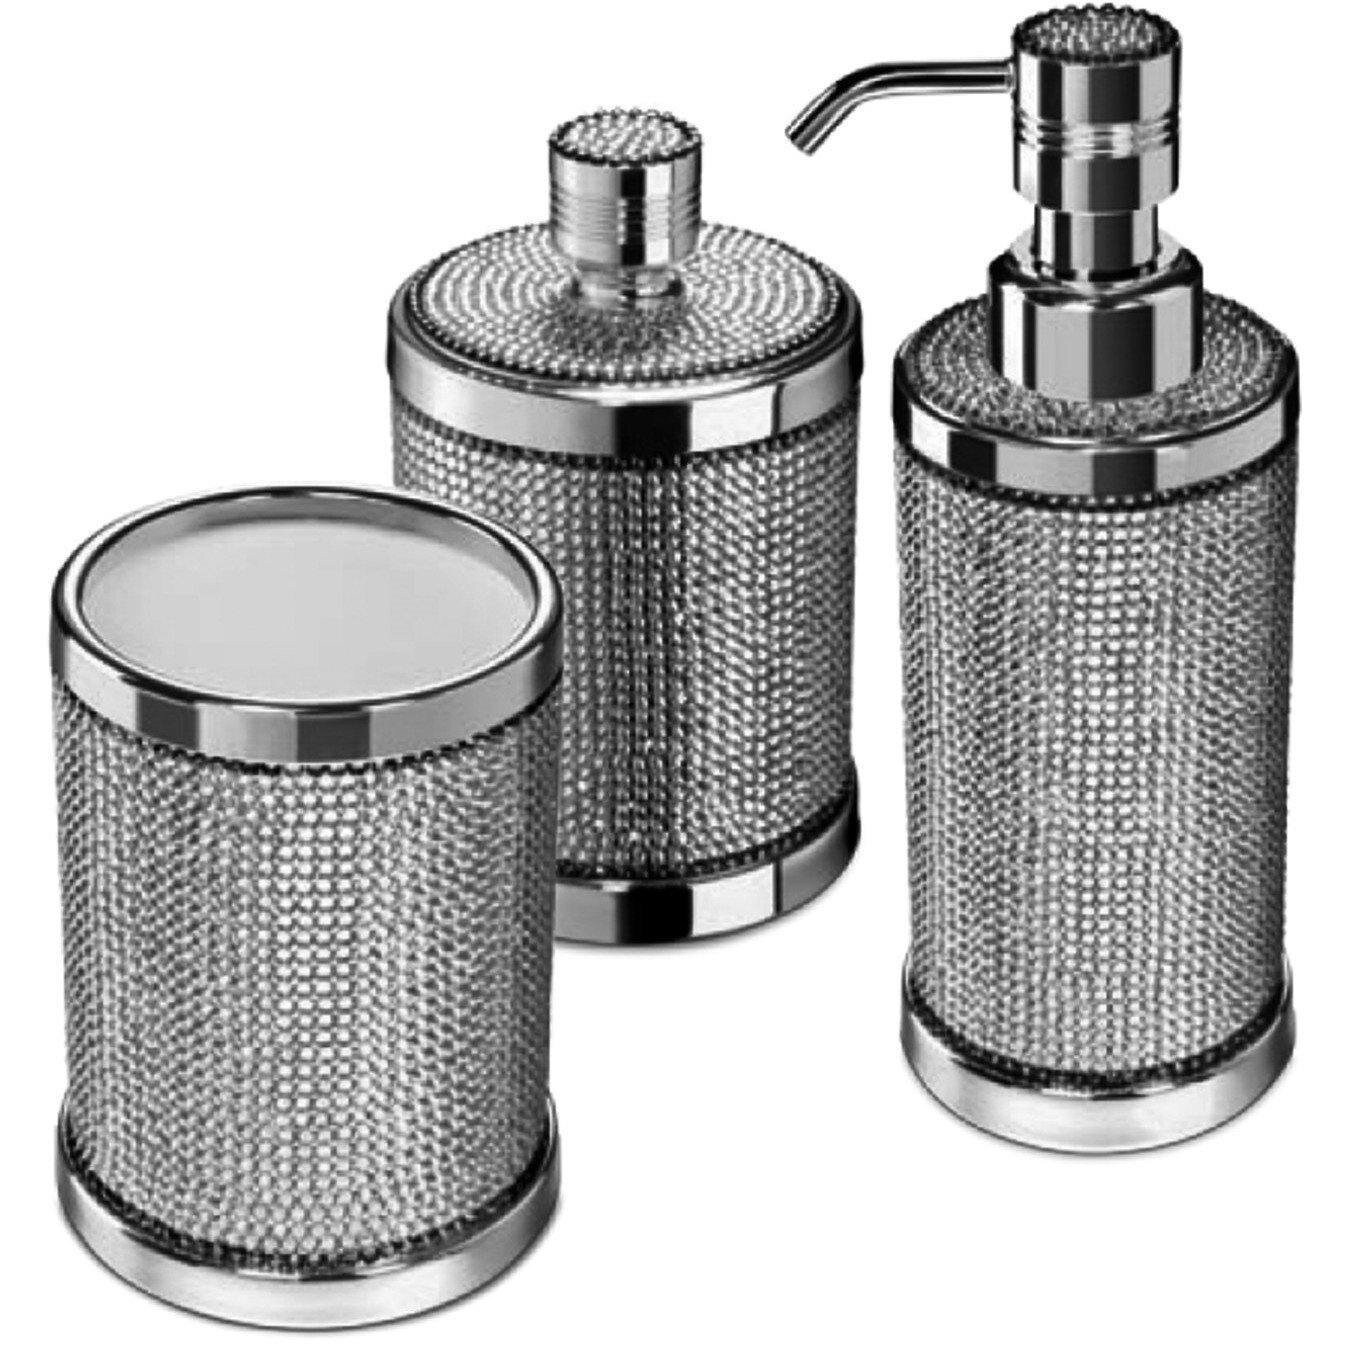 Rosdorf Park Patrice 3 Piece Swarovski Bathroom Accessory Set Wayfair